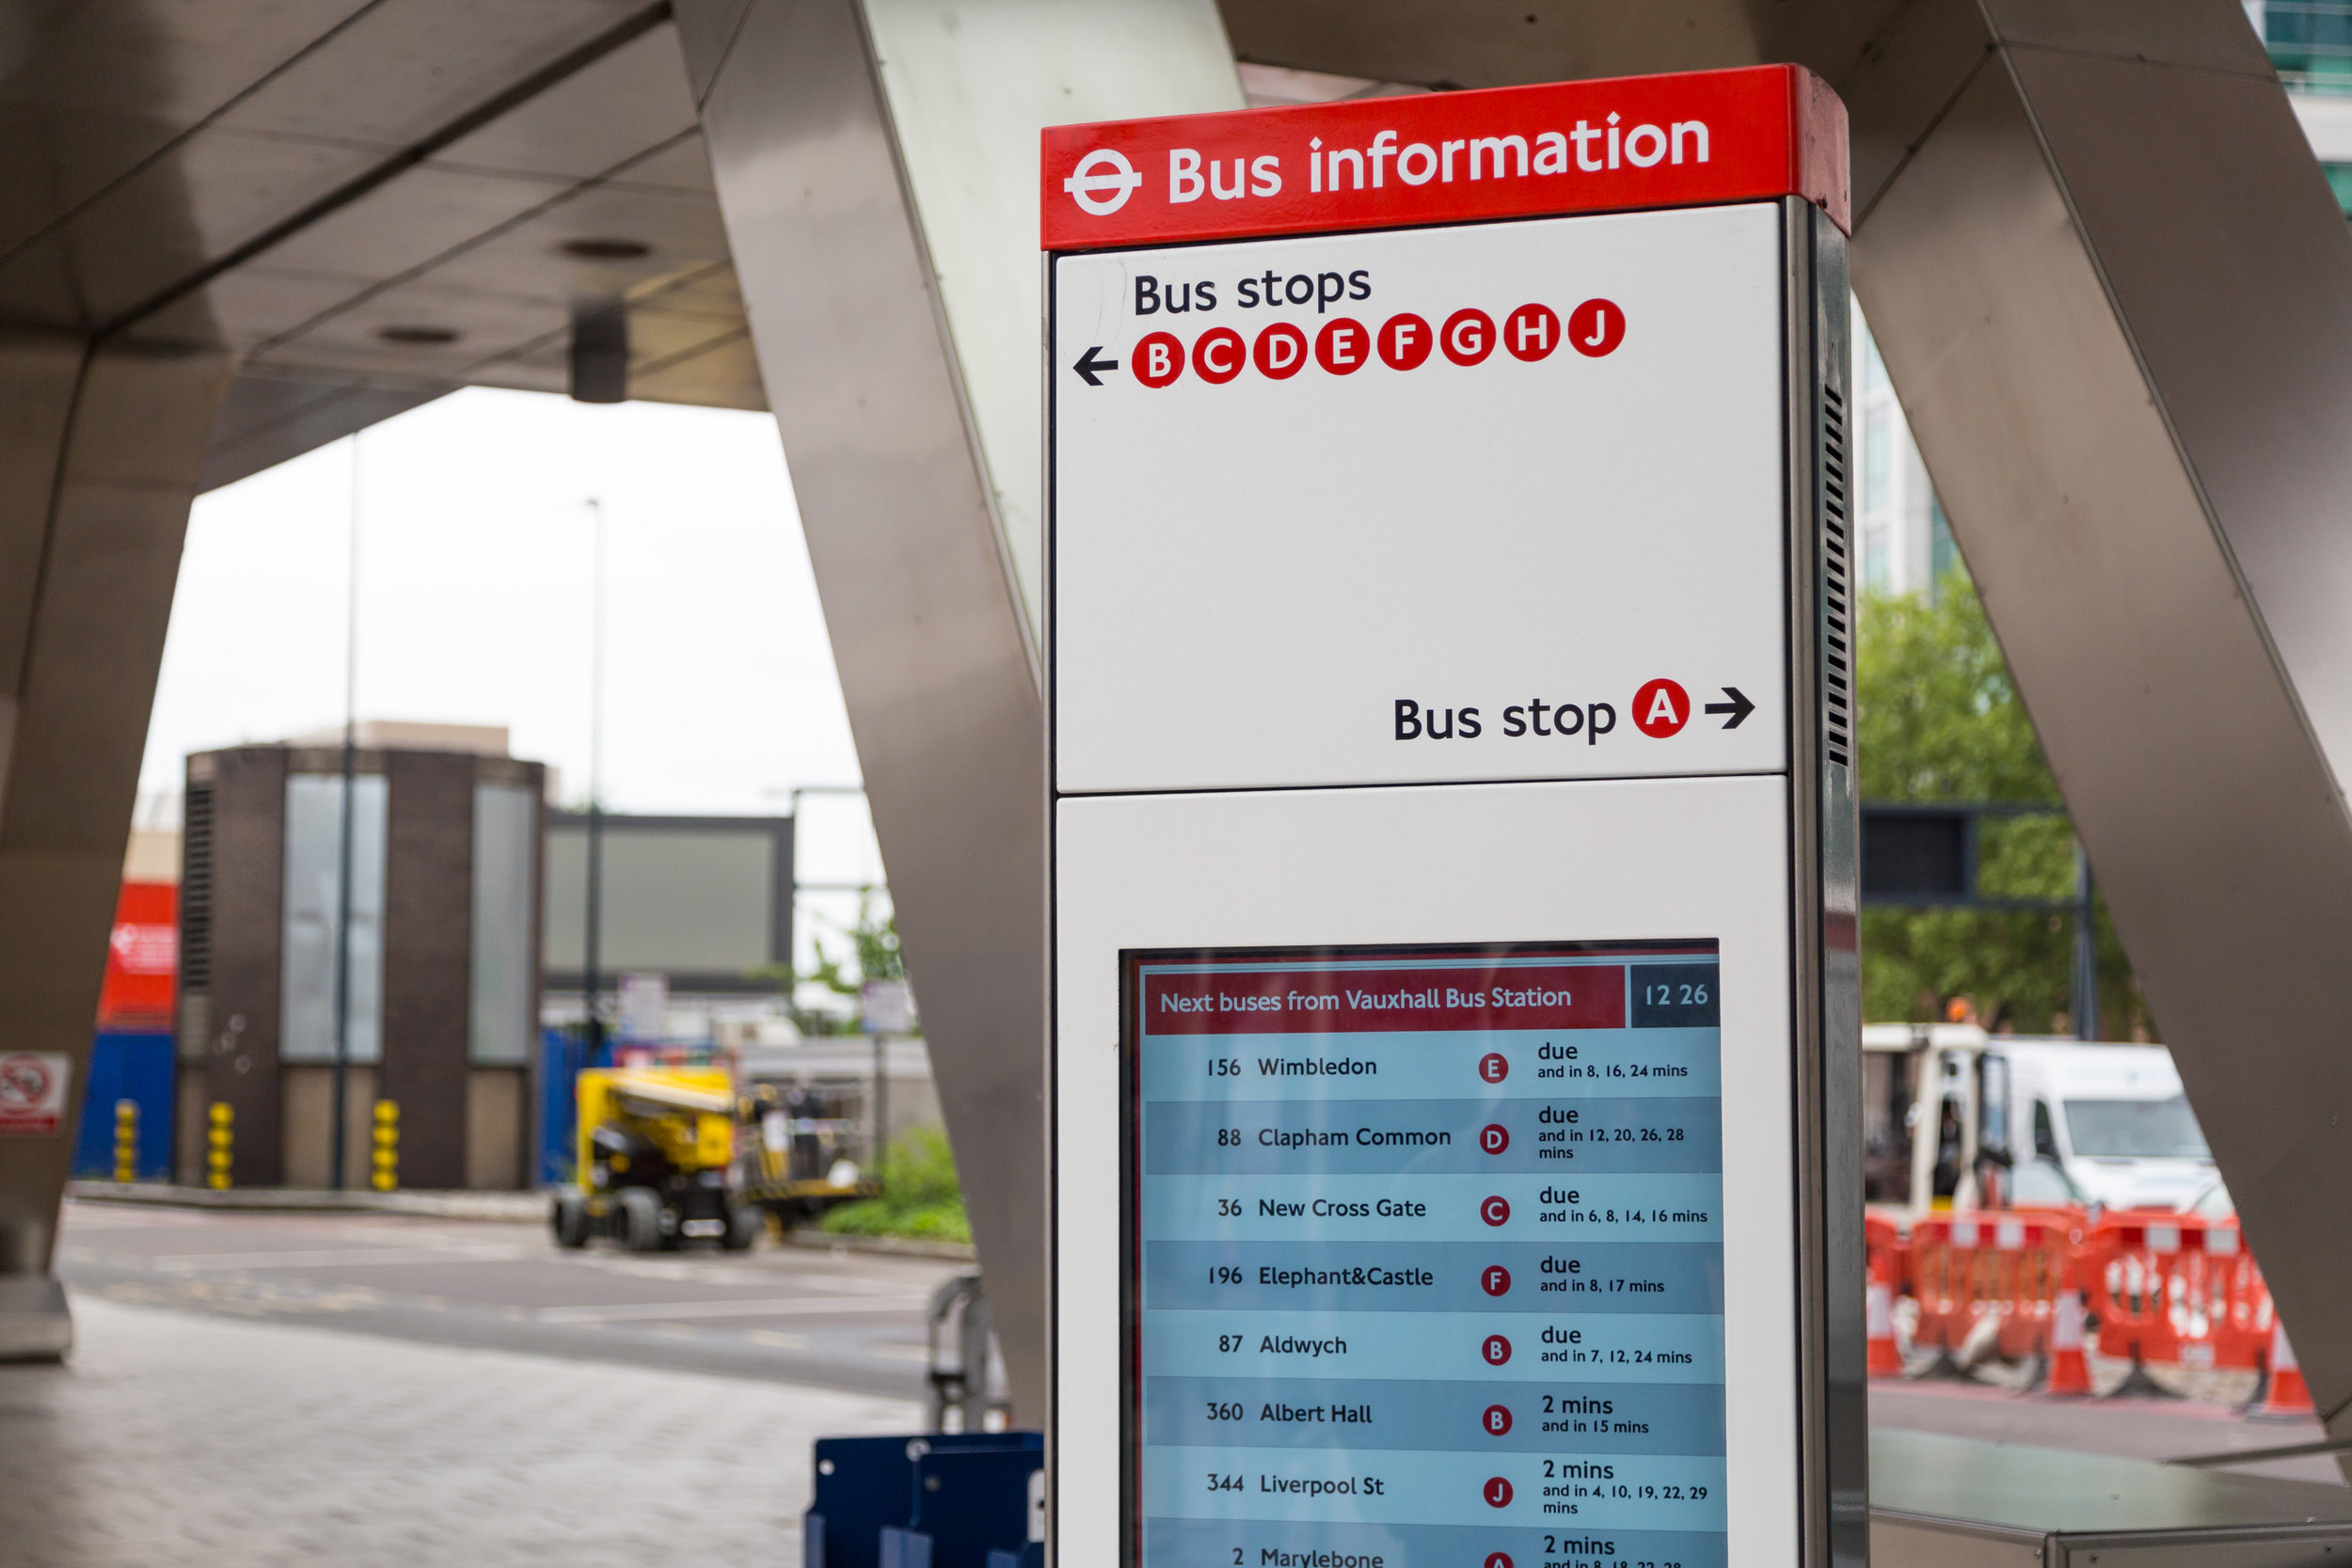 You'll Find Our Award Winning Work For TfL Across London - Including at Vauxhall bus station.